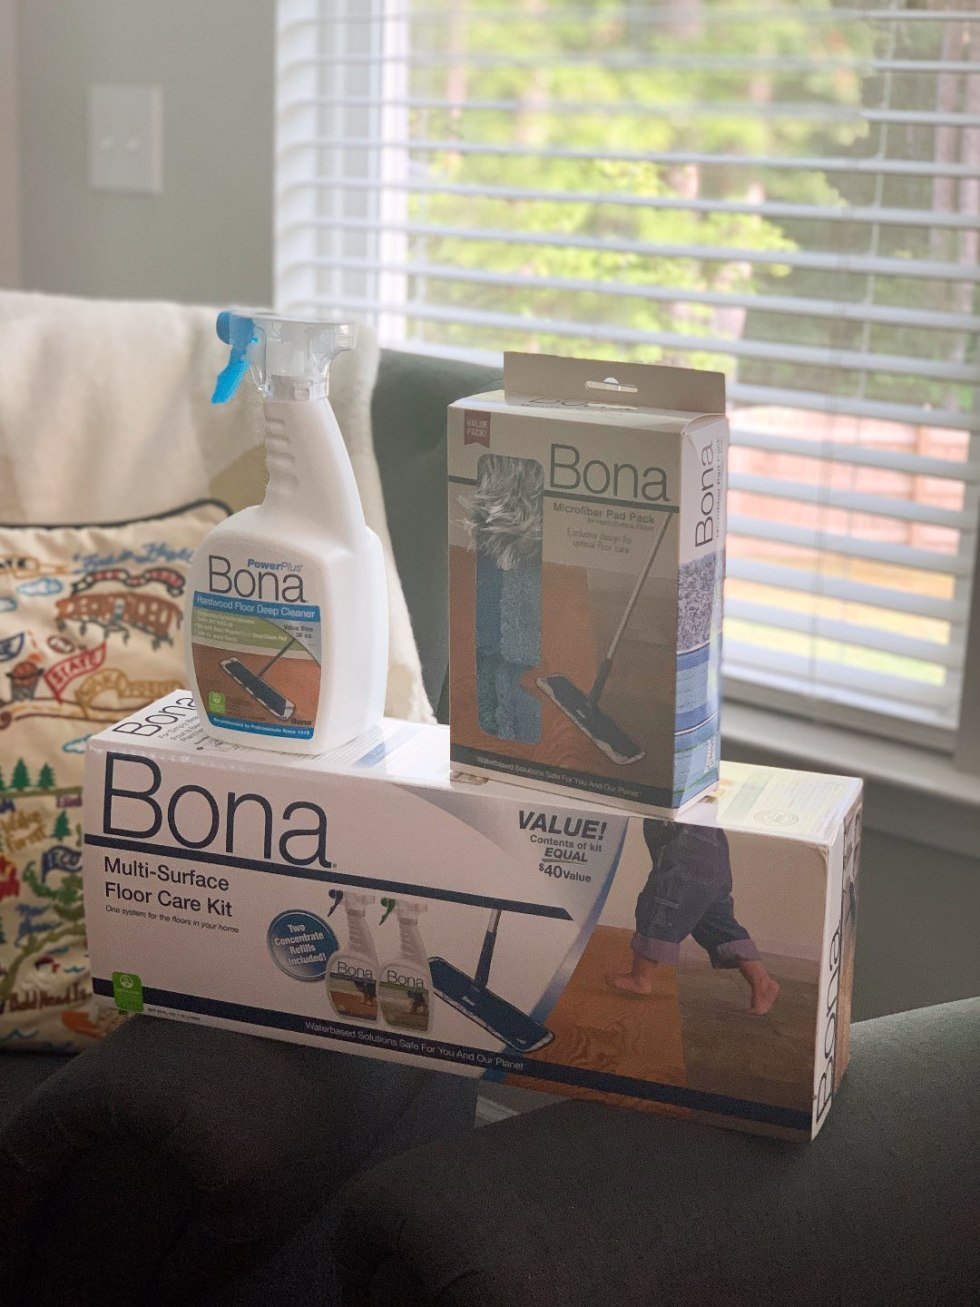 Keeping Our Floors Clean with Bona Essentials - I'm Fixin' To - @mbg0112 | Keeping Our Floors Clean with Bona Essentials by popular lifestyle blog, I'm Fixin' To: image of a Bona Essentials Multi-Surface Floor Care Kit.